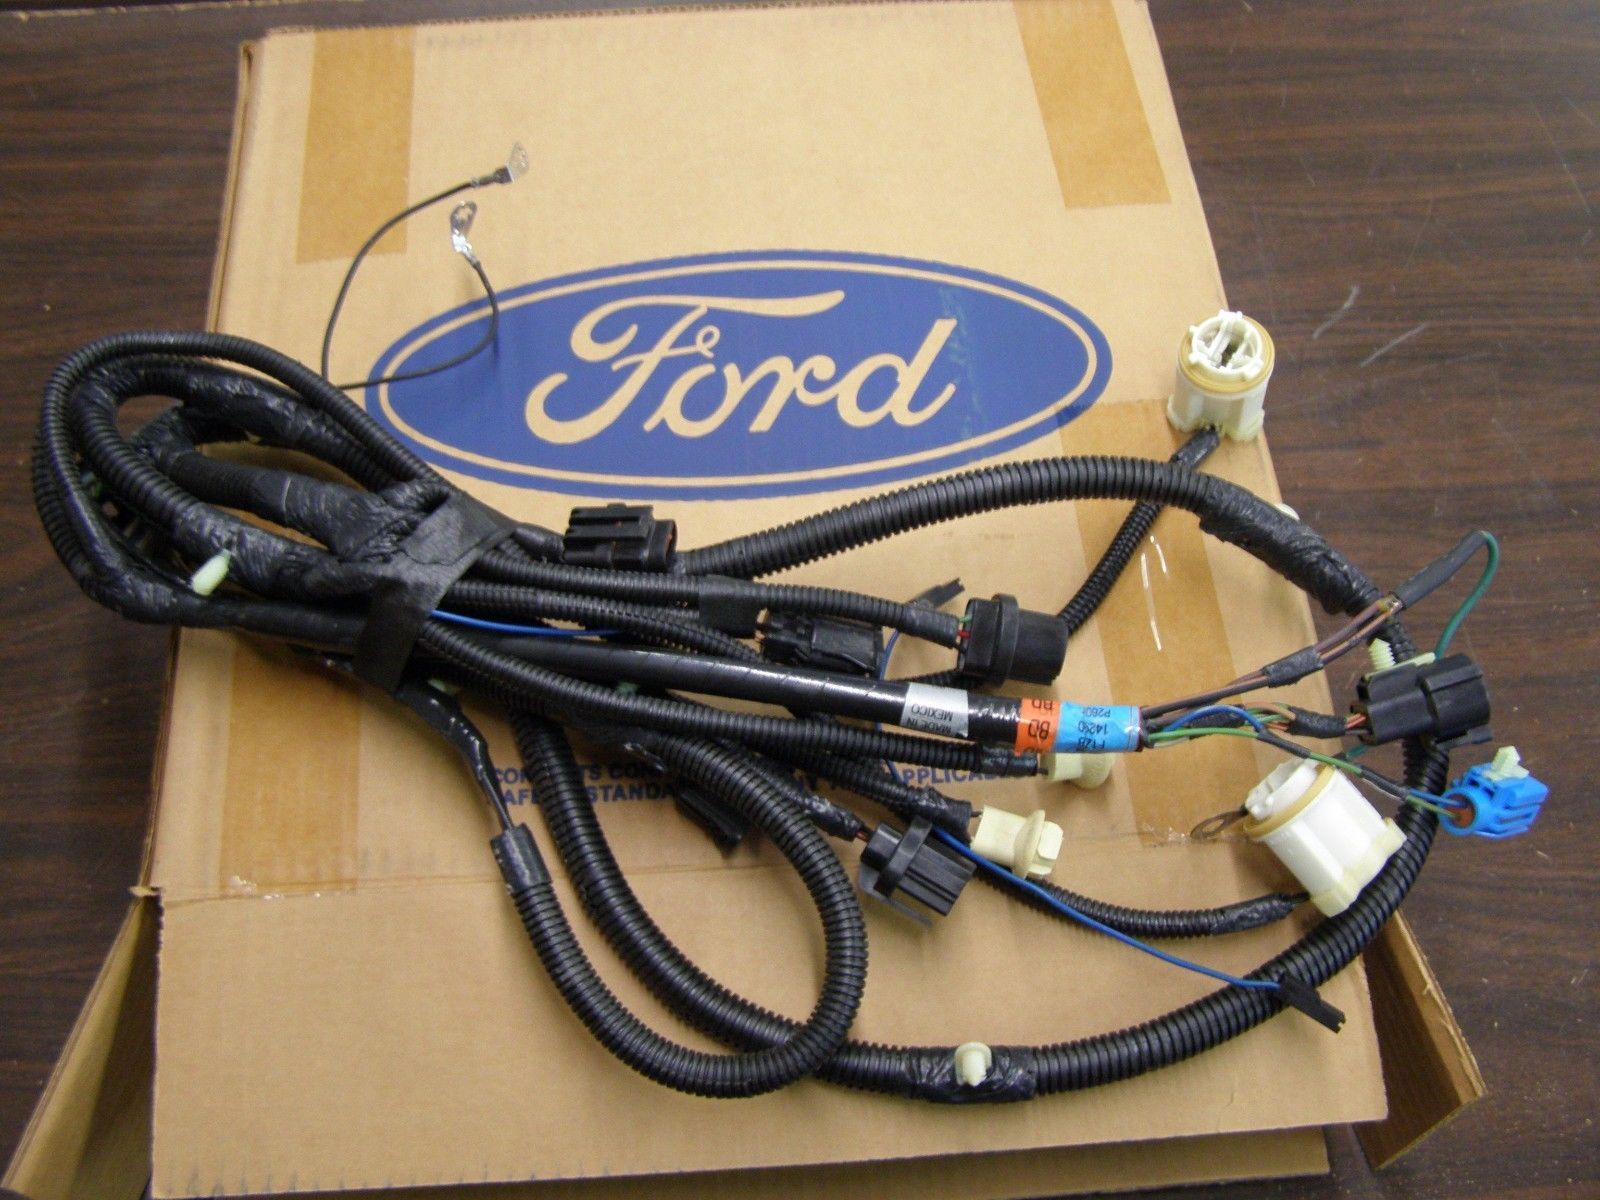 up for auction is a nos under hood (dash panel to headlight) wiring harness  for a 1991-1993 mustang with a v8 motor (also 1993 cobra)